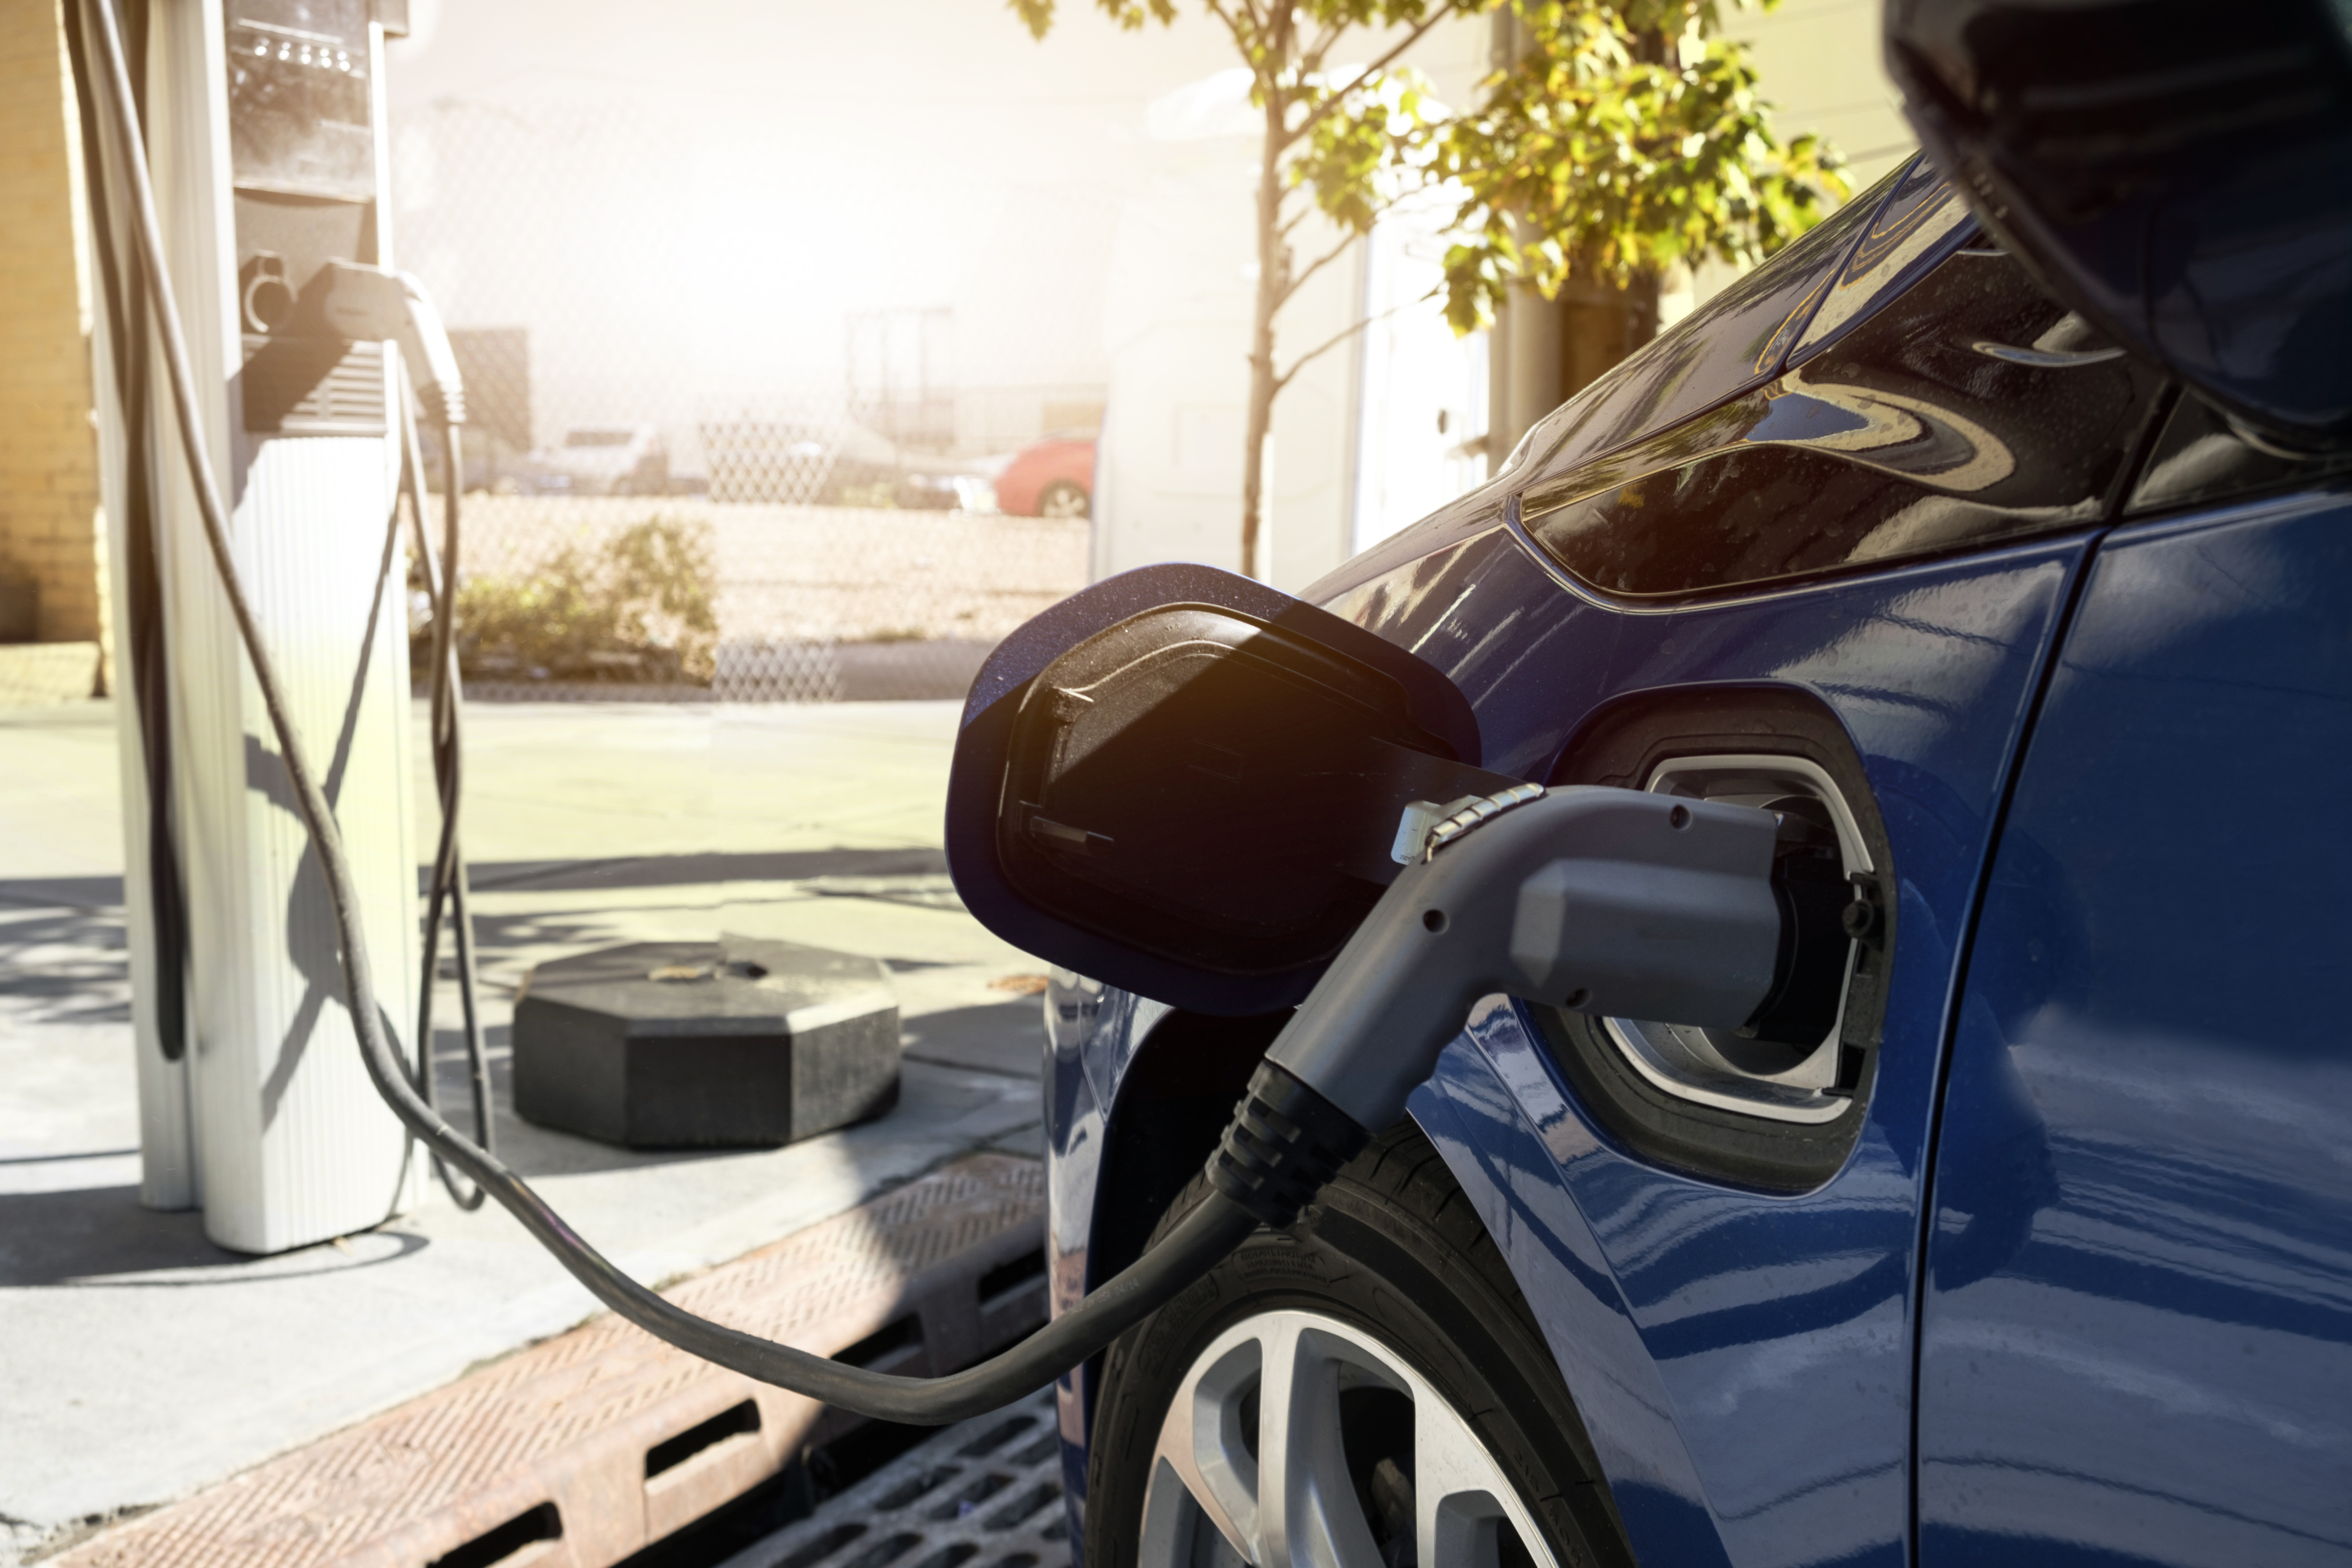 Getting Charged Up for National Drive Electric Week landscape